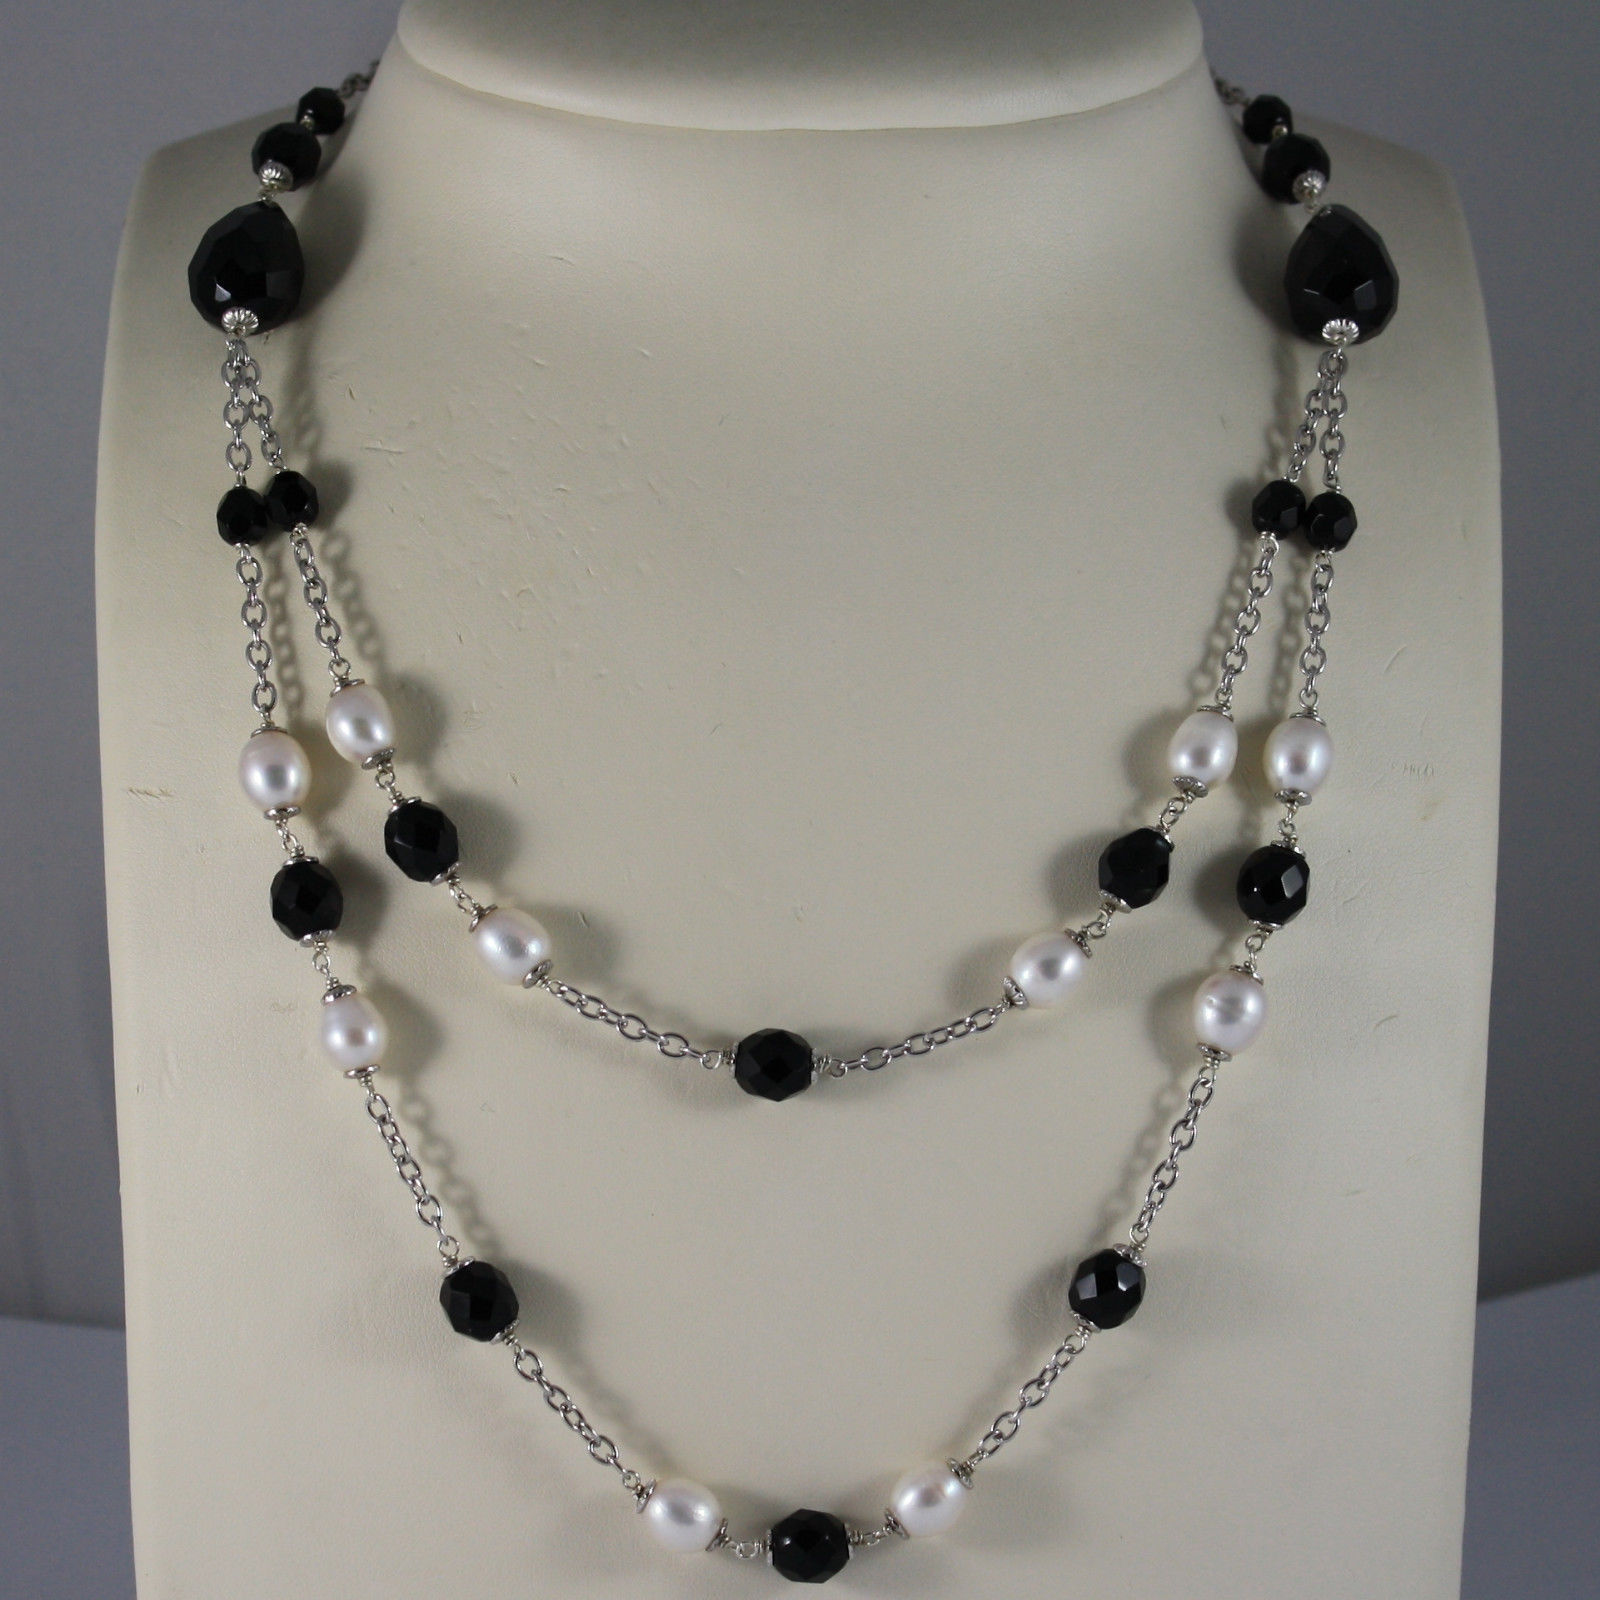 .925 RHODIUM NECKLACE WITH BLACK ONYX AND FRESHWATER WHITE PEARLS